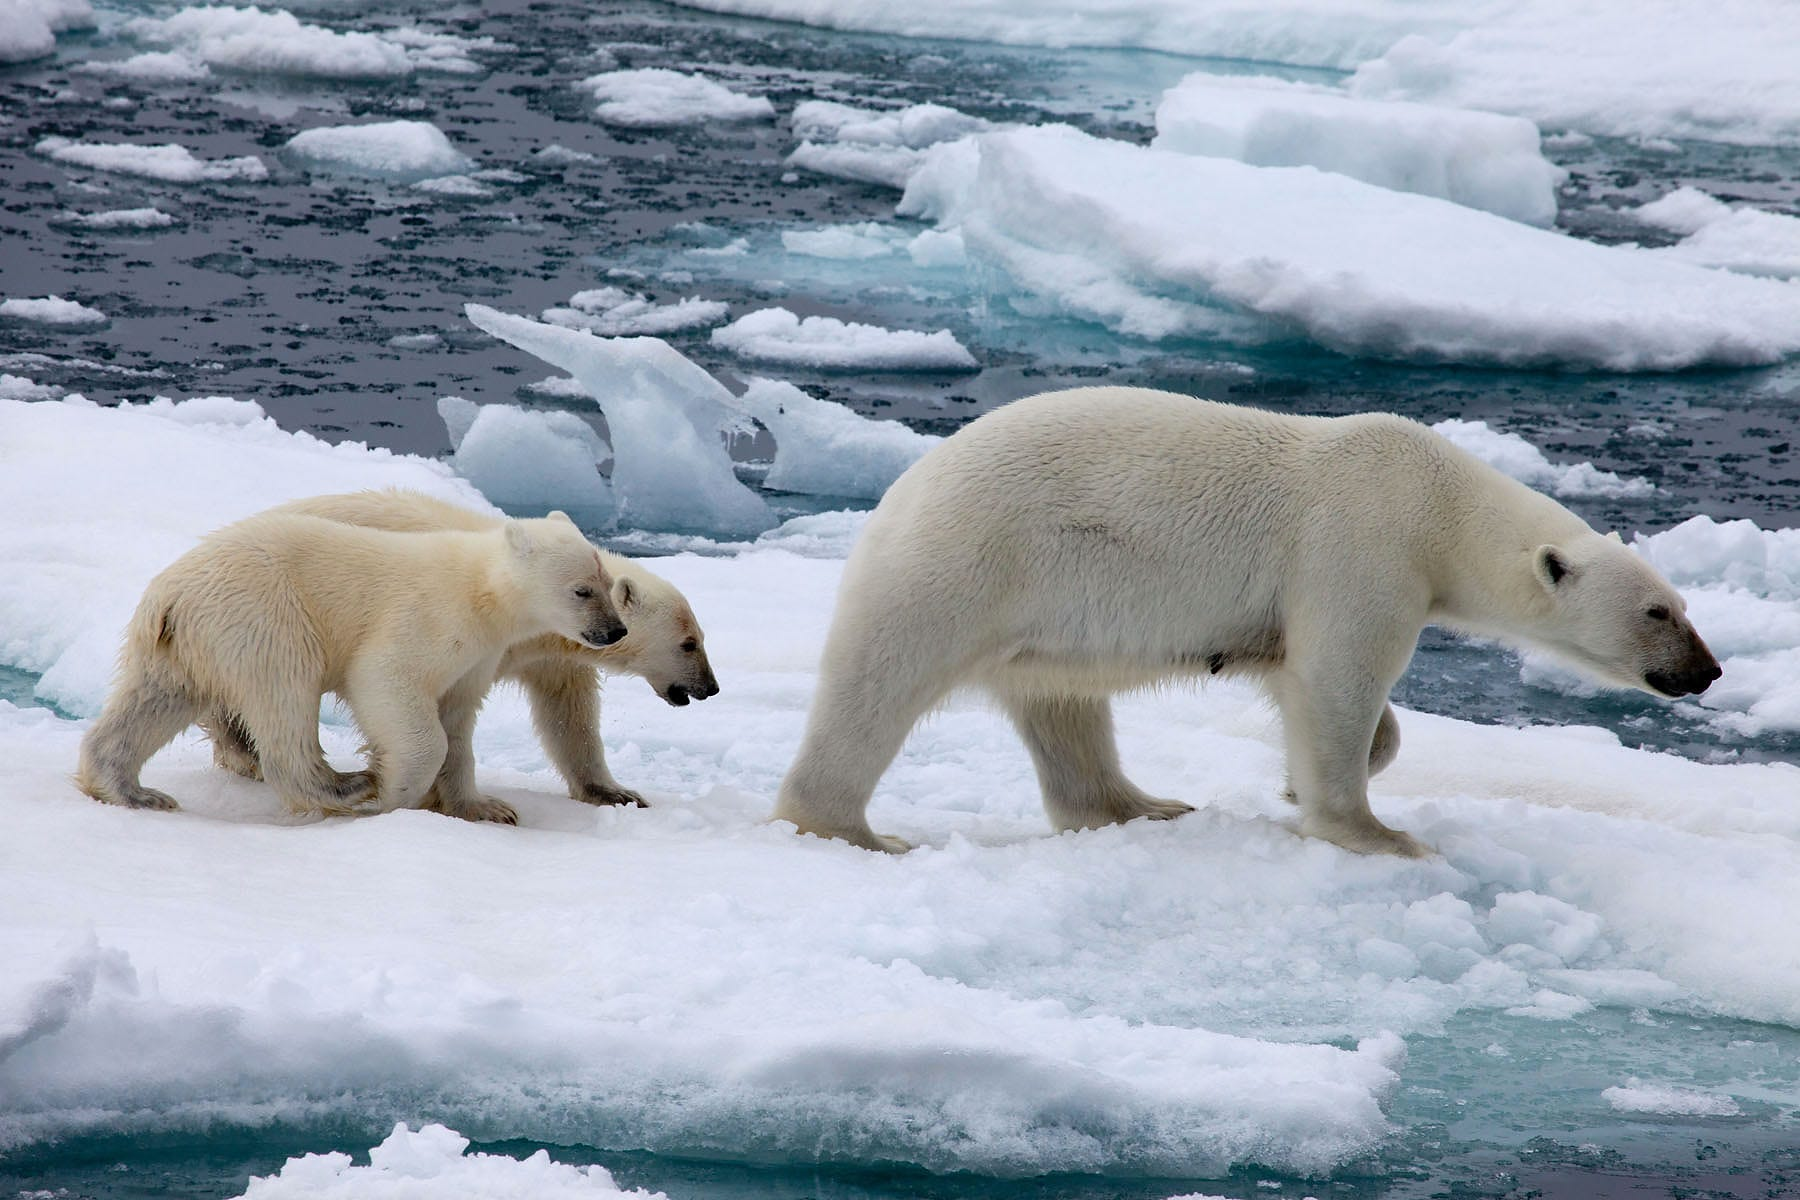 Dozens of polar bears invade remote Russian town, create 'emergency situation'